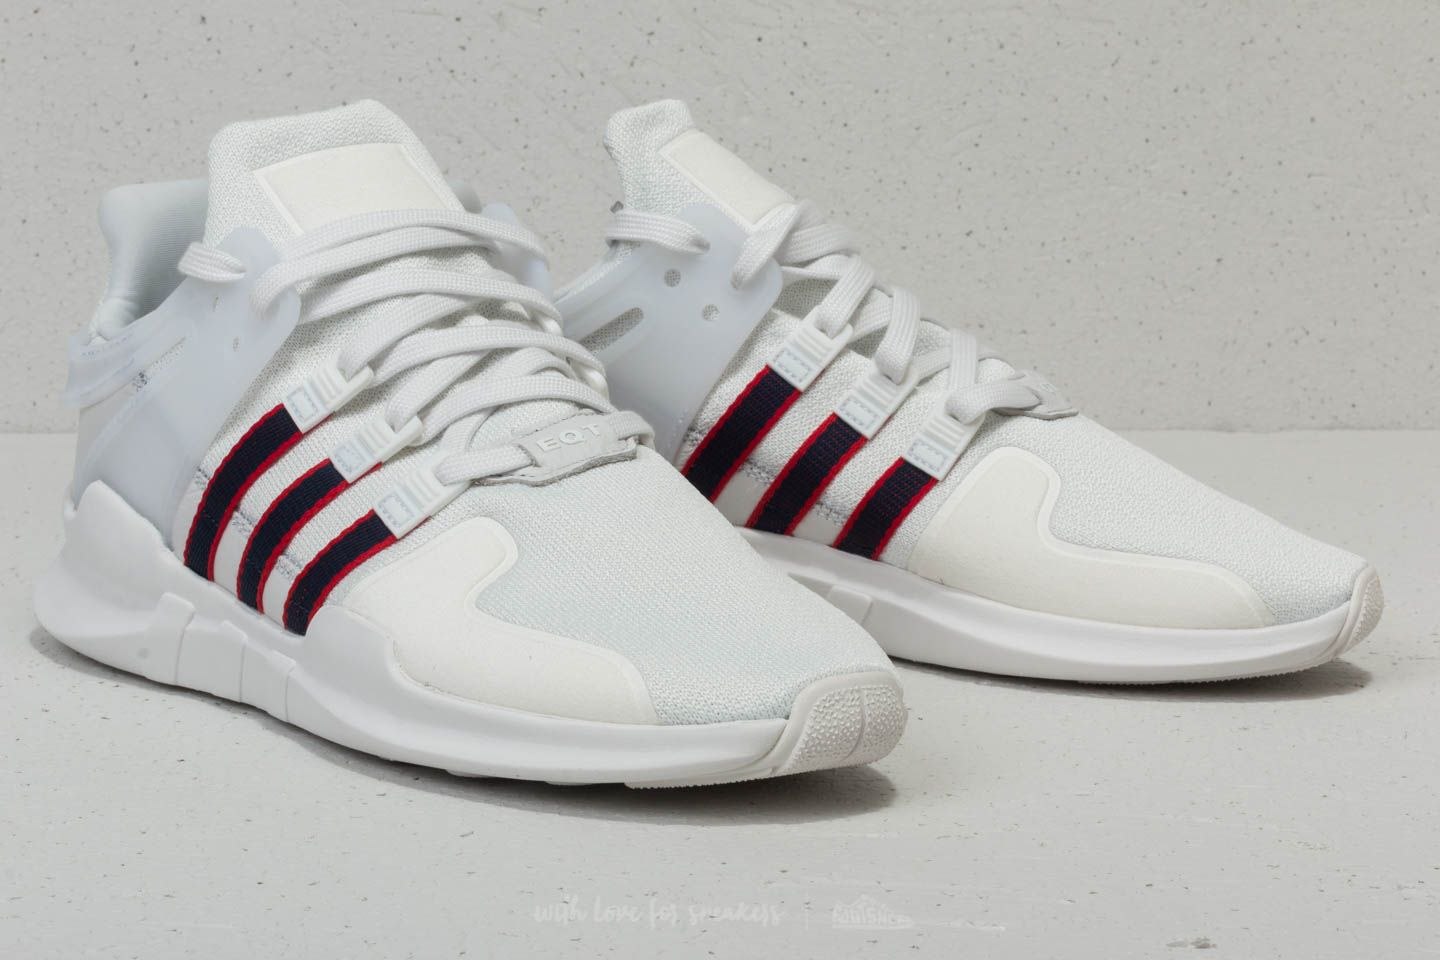 adidas EQT Support ADV Crystal White  Collegiate Navy  Scarlet at a great  price £ 443d166f2cd4